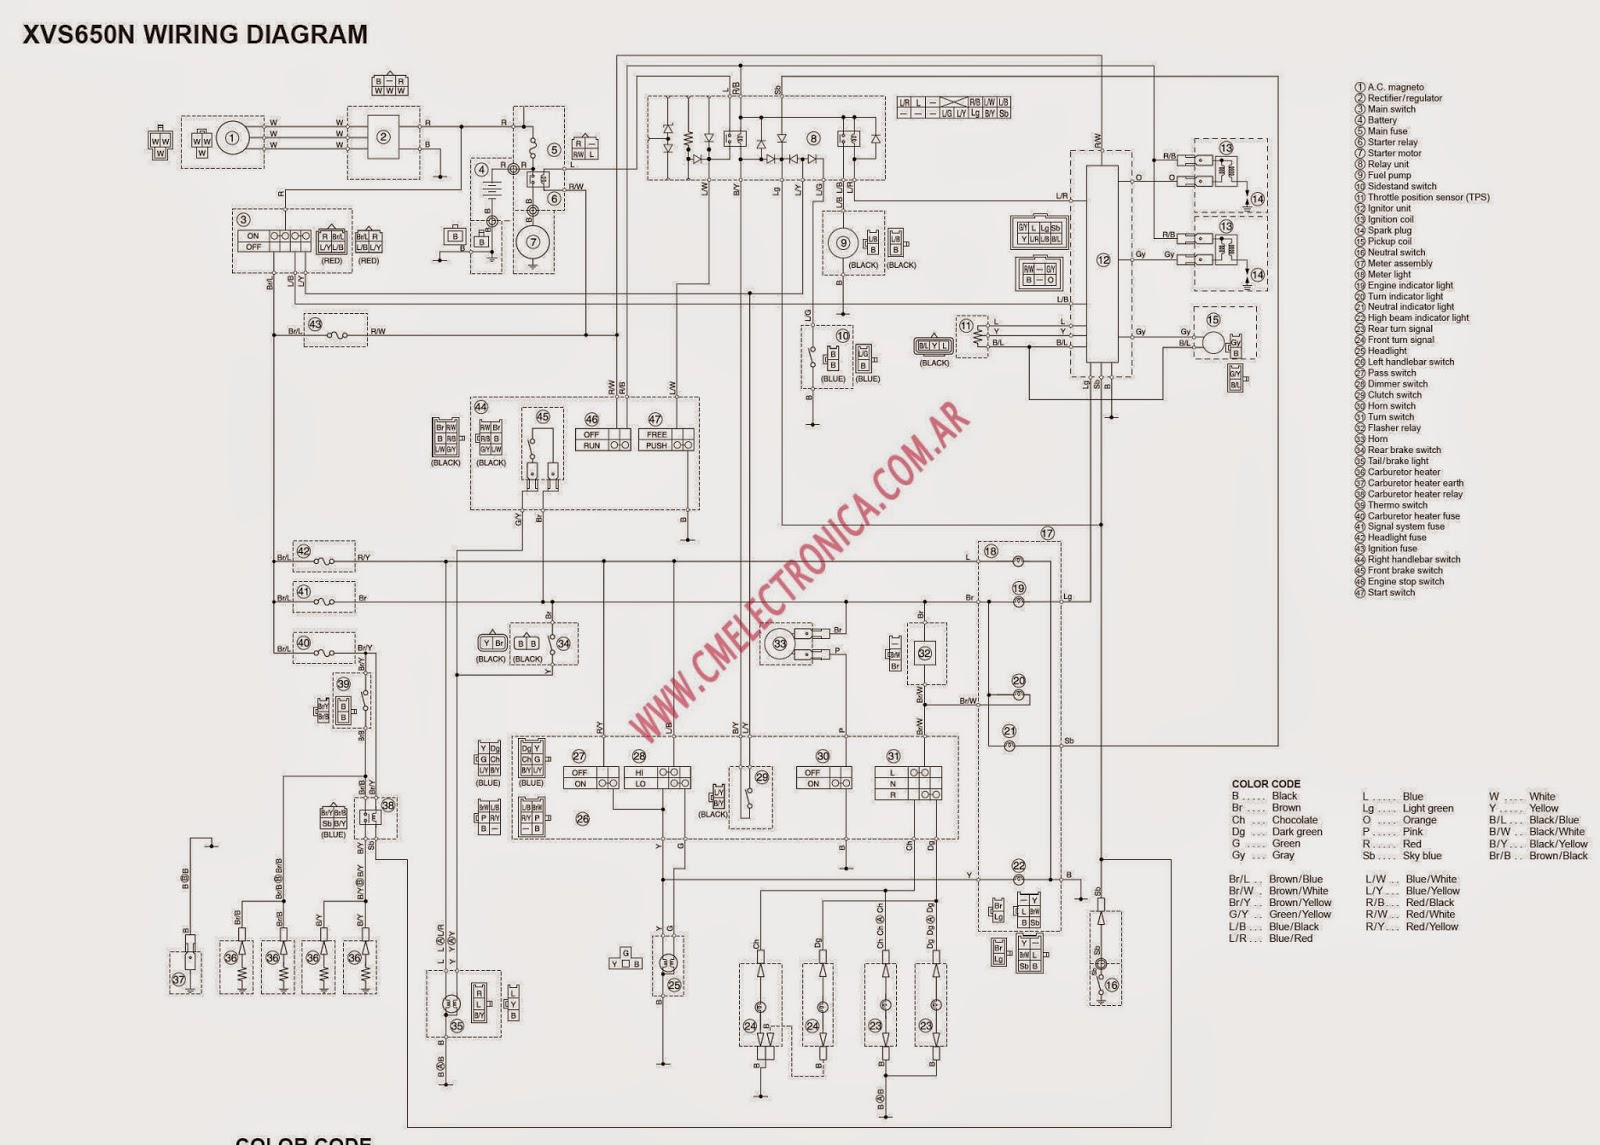 medium resolution of yamaha bws wiring diagram simple wiring schema basic house wiring diagrams yamaha v star 950 wiring